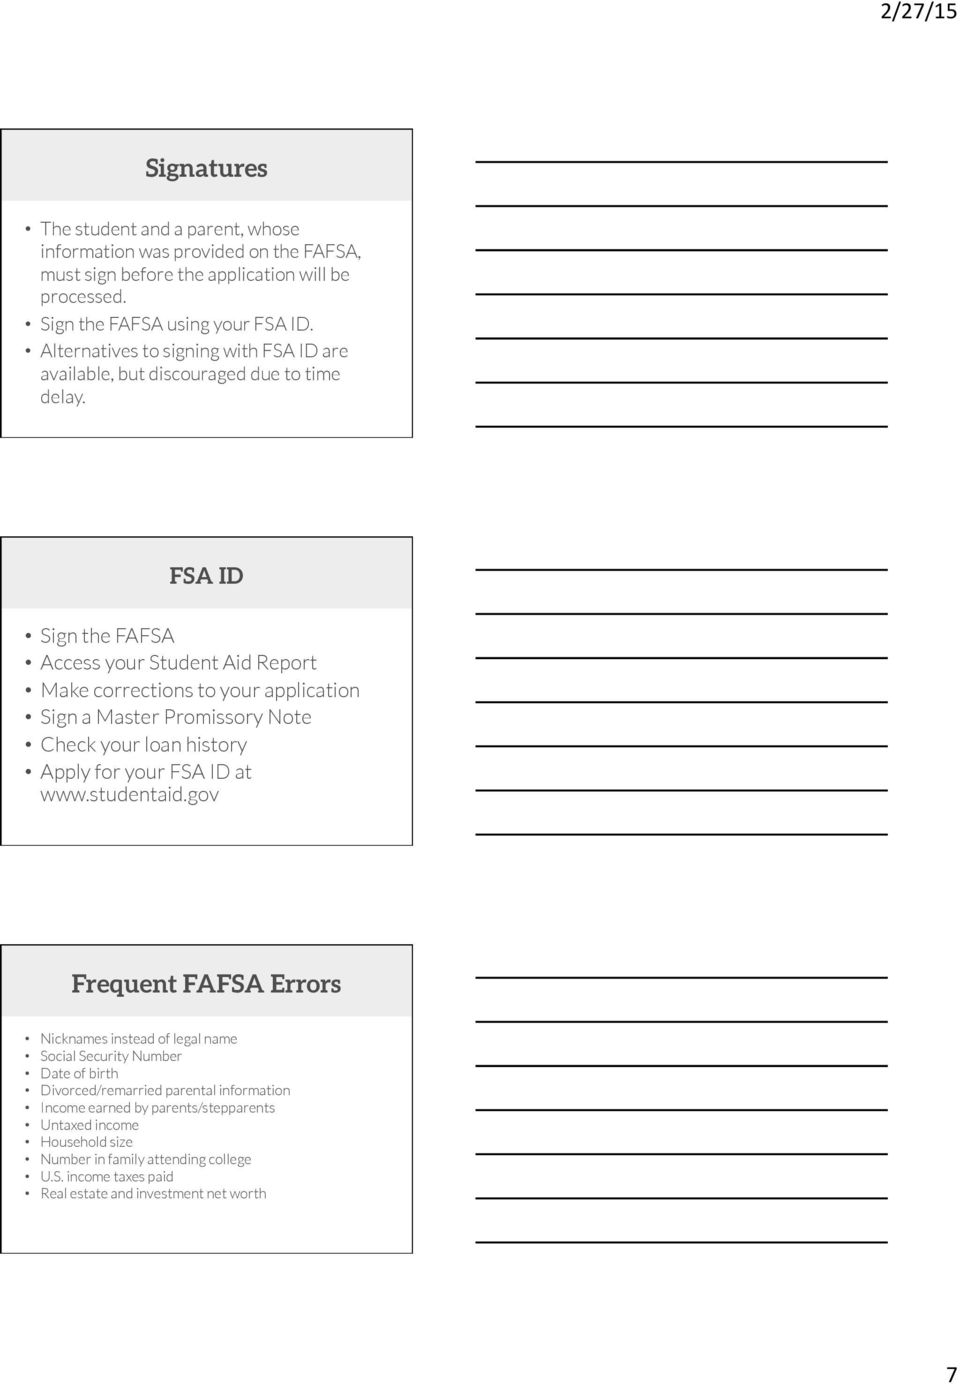 FSA ID Sign the FAFSA Access your Student Aid Report Make corrections to your application Sign a Master Promissory Note Check your loan history Apply for your FSA ID at www.studentaid.